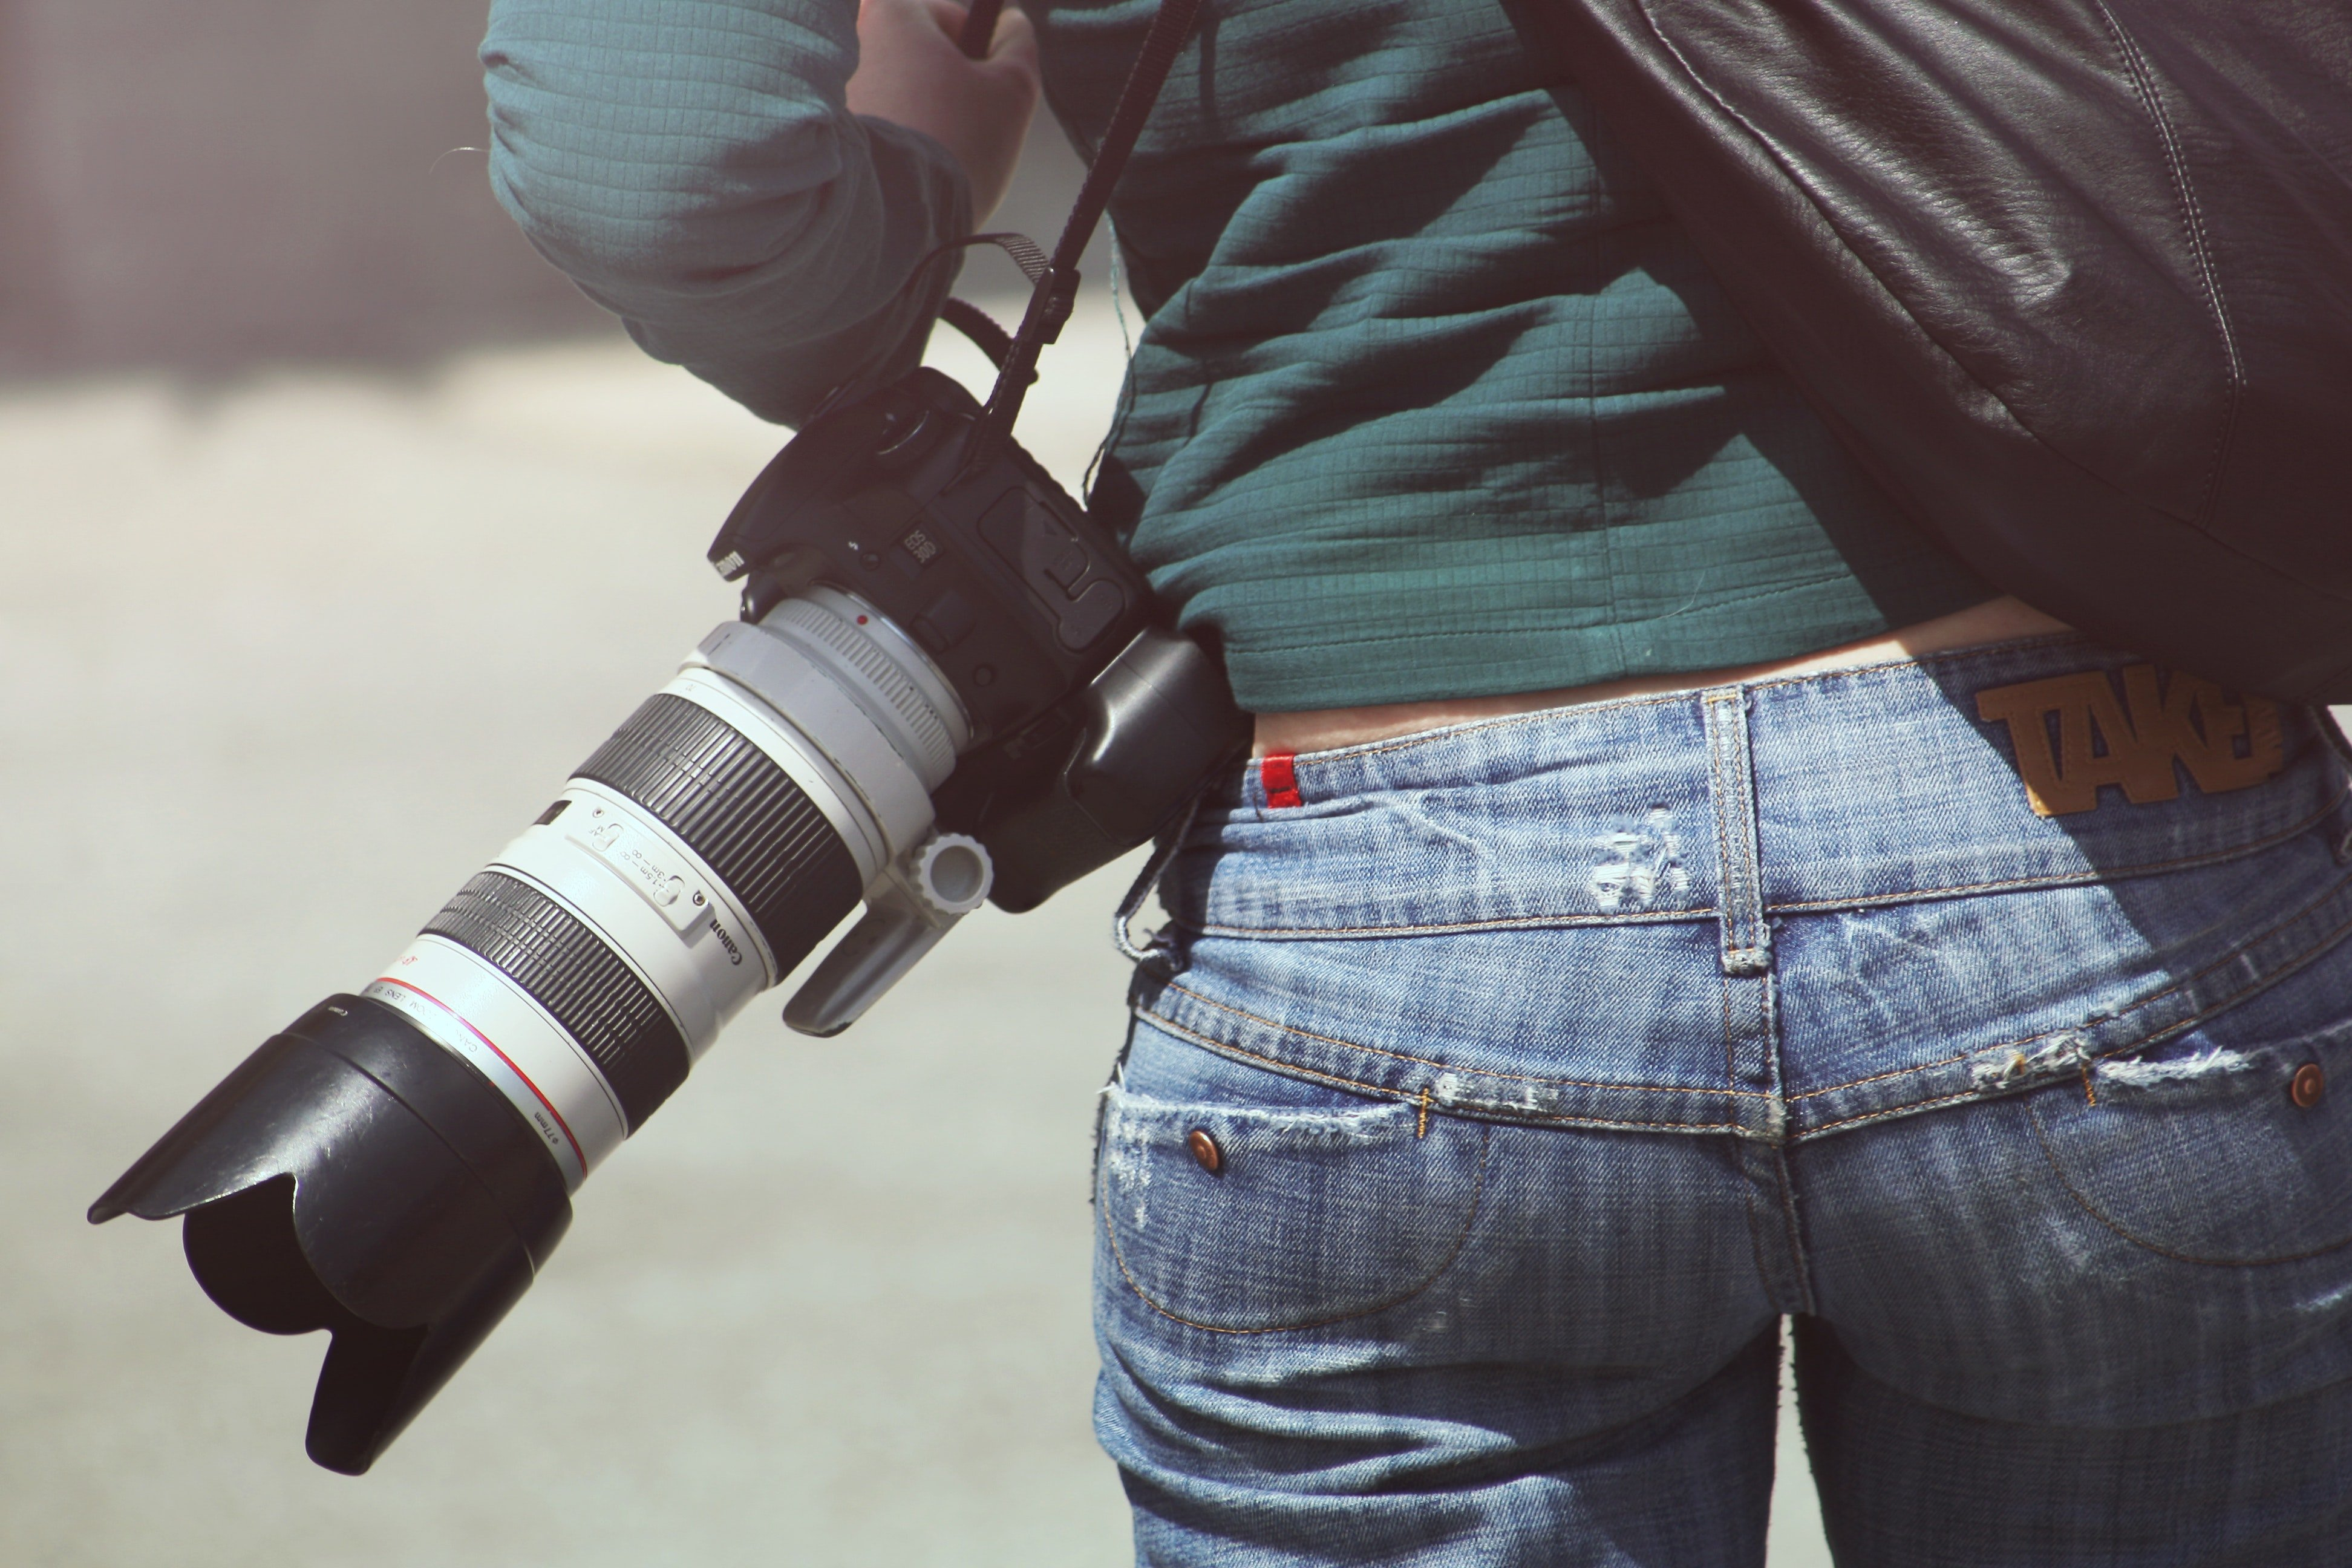 A journalist on field with their camera : Photo: Pexels